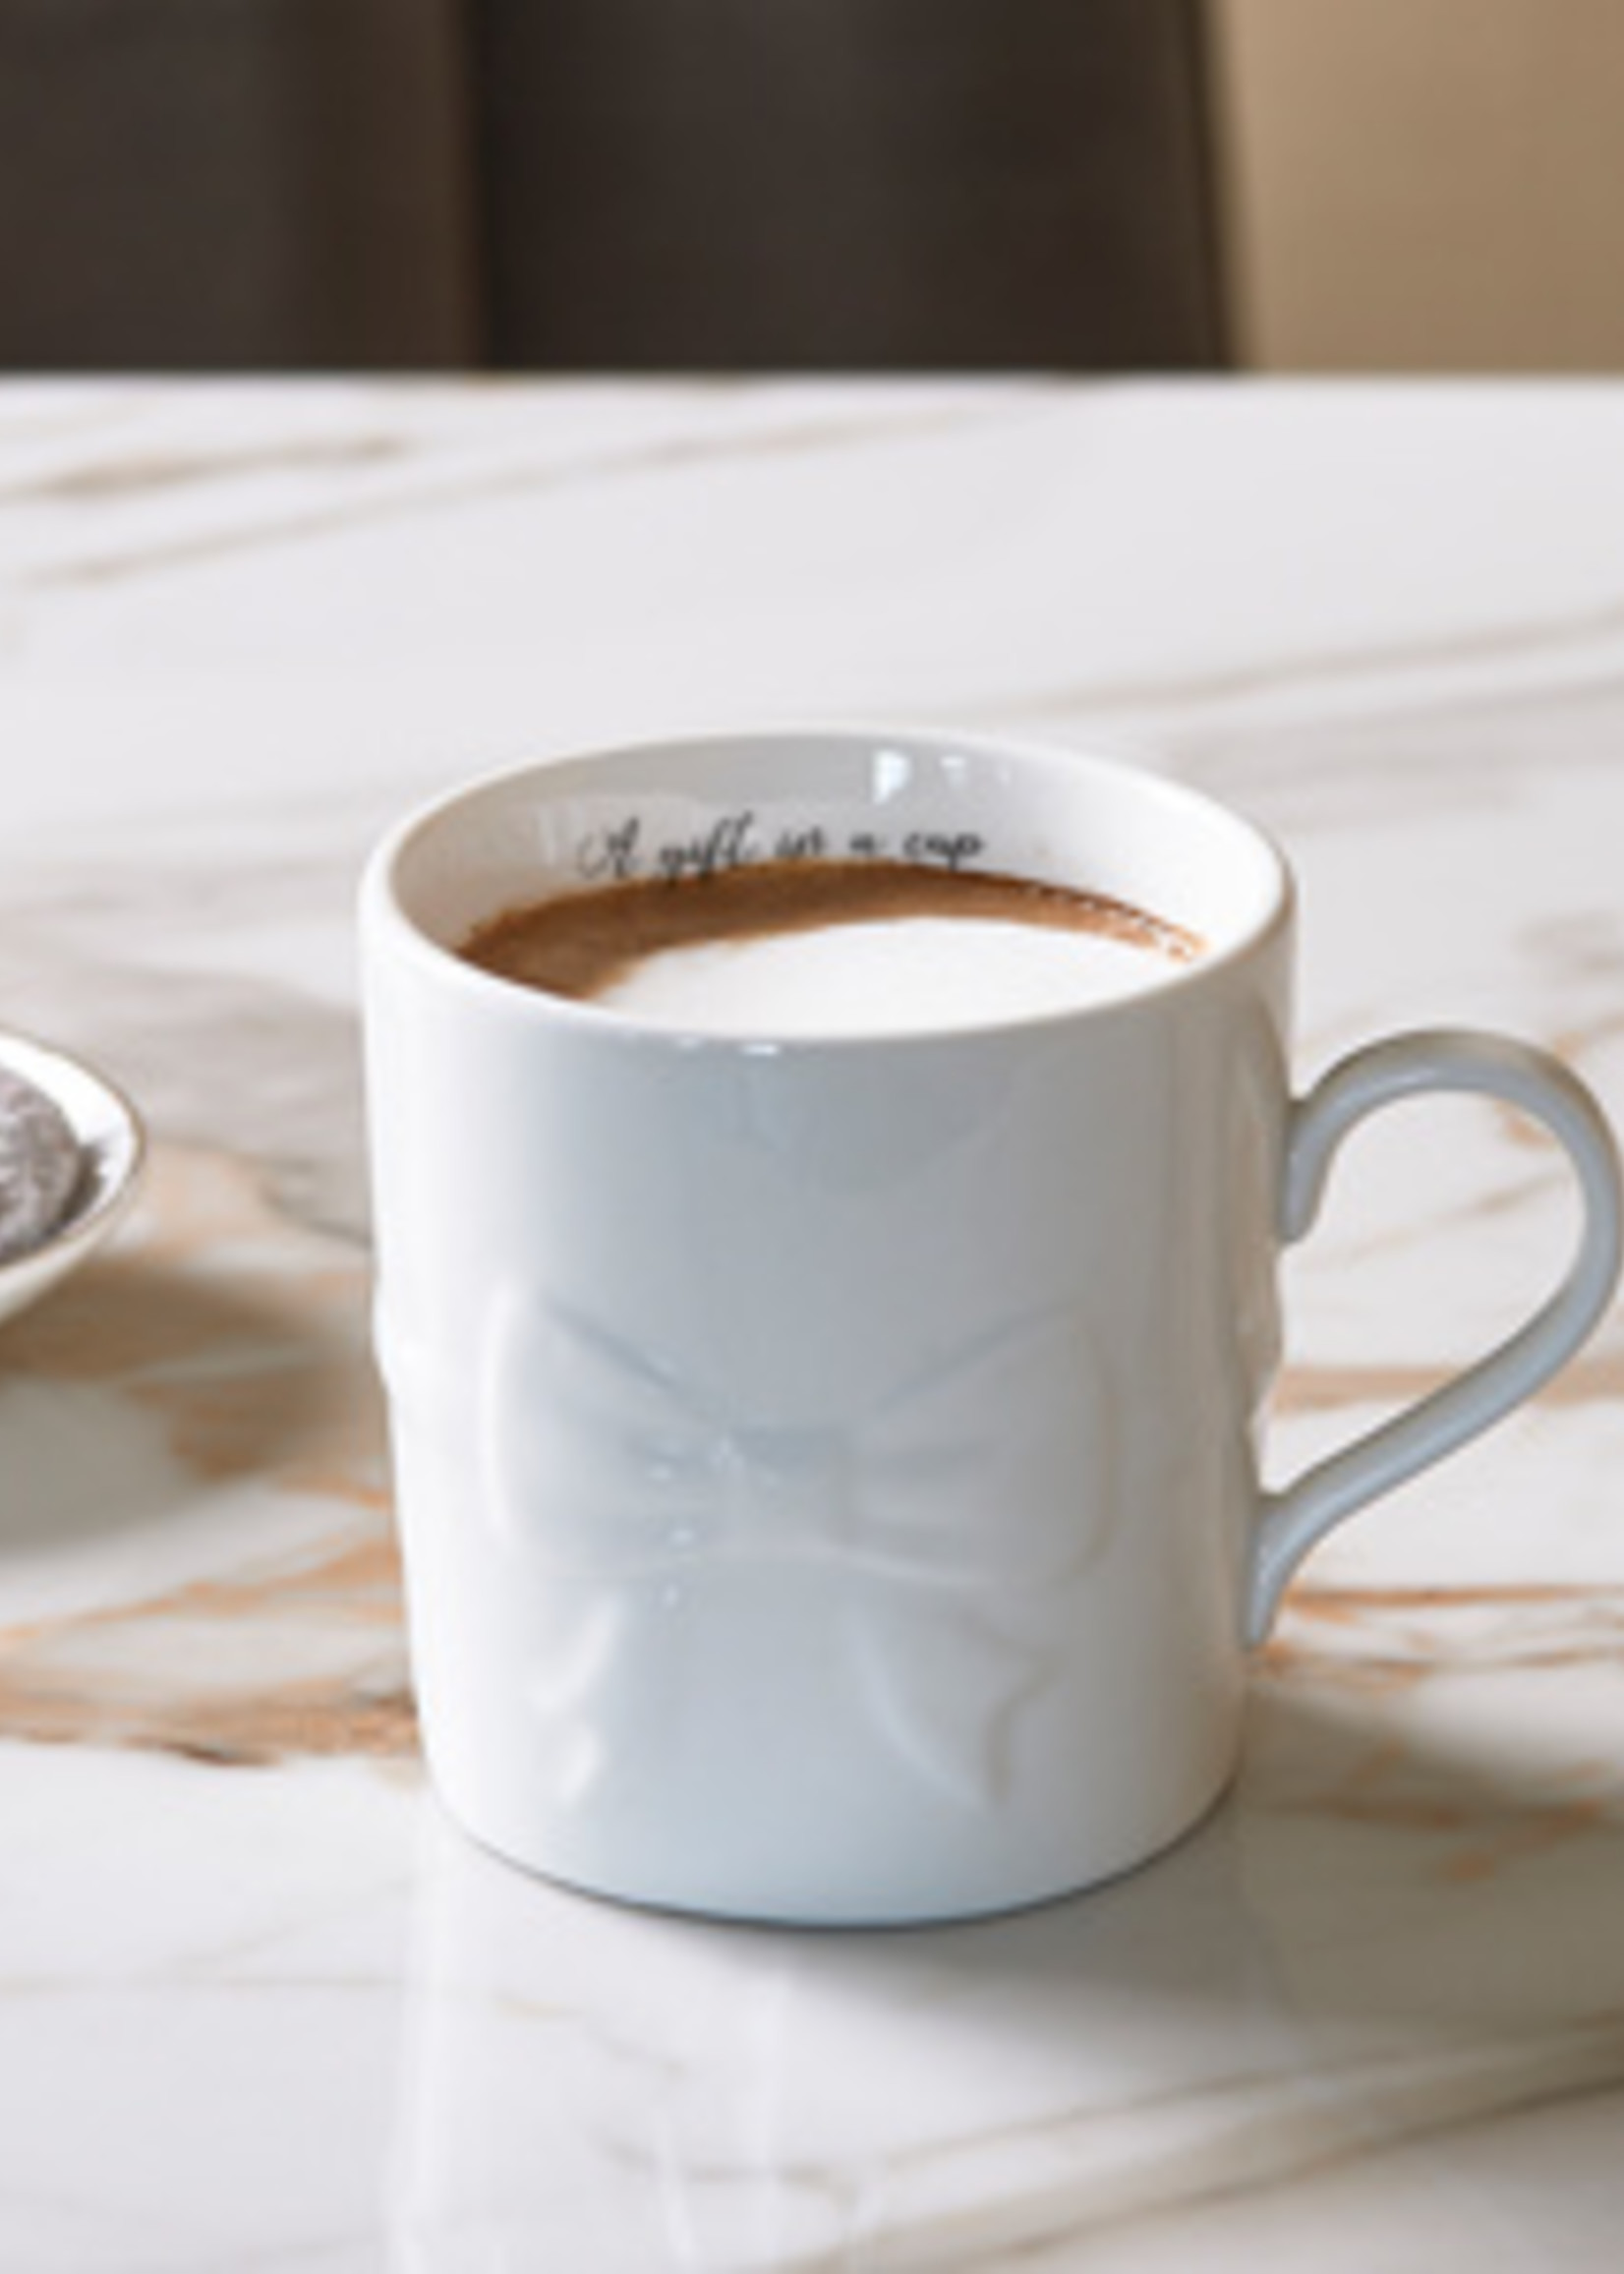 Riviera Maison A Gift In A Cup Mug S